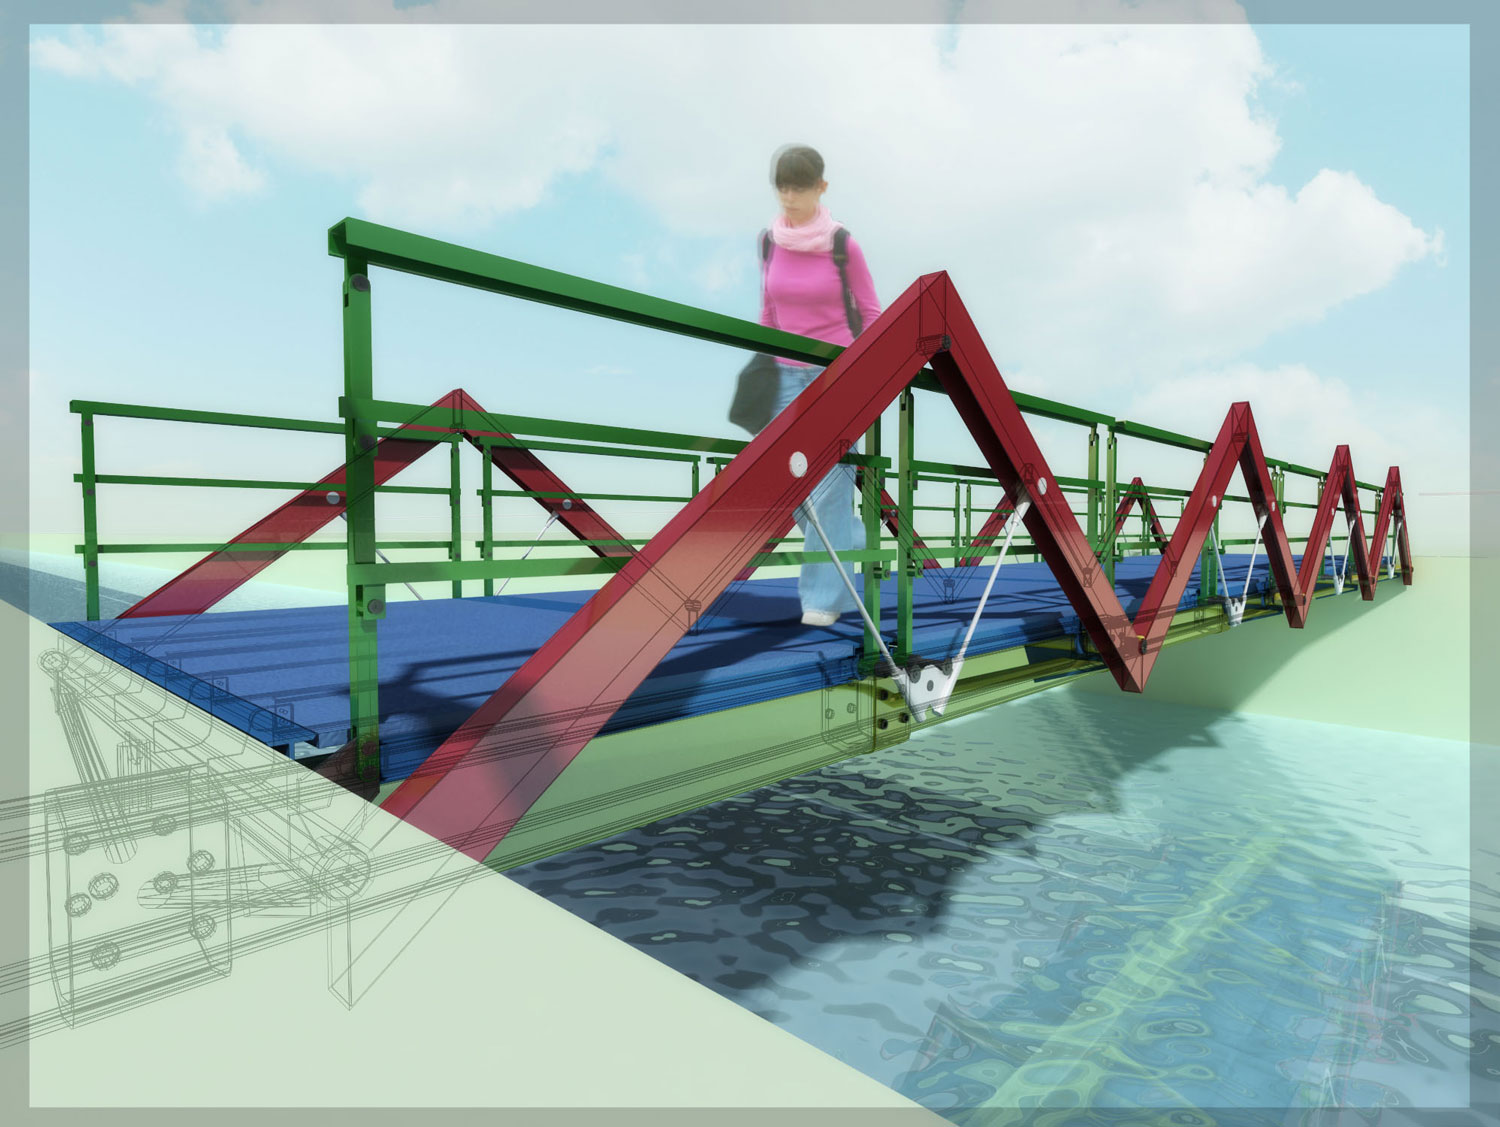 Folding-bridge-innovative-matteo-gerbi-architect-(5).jpg